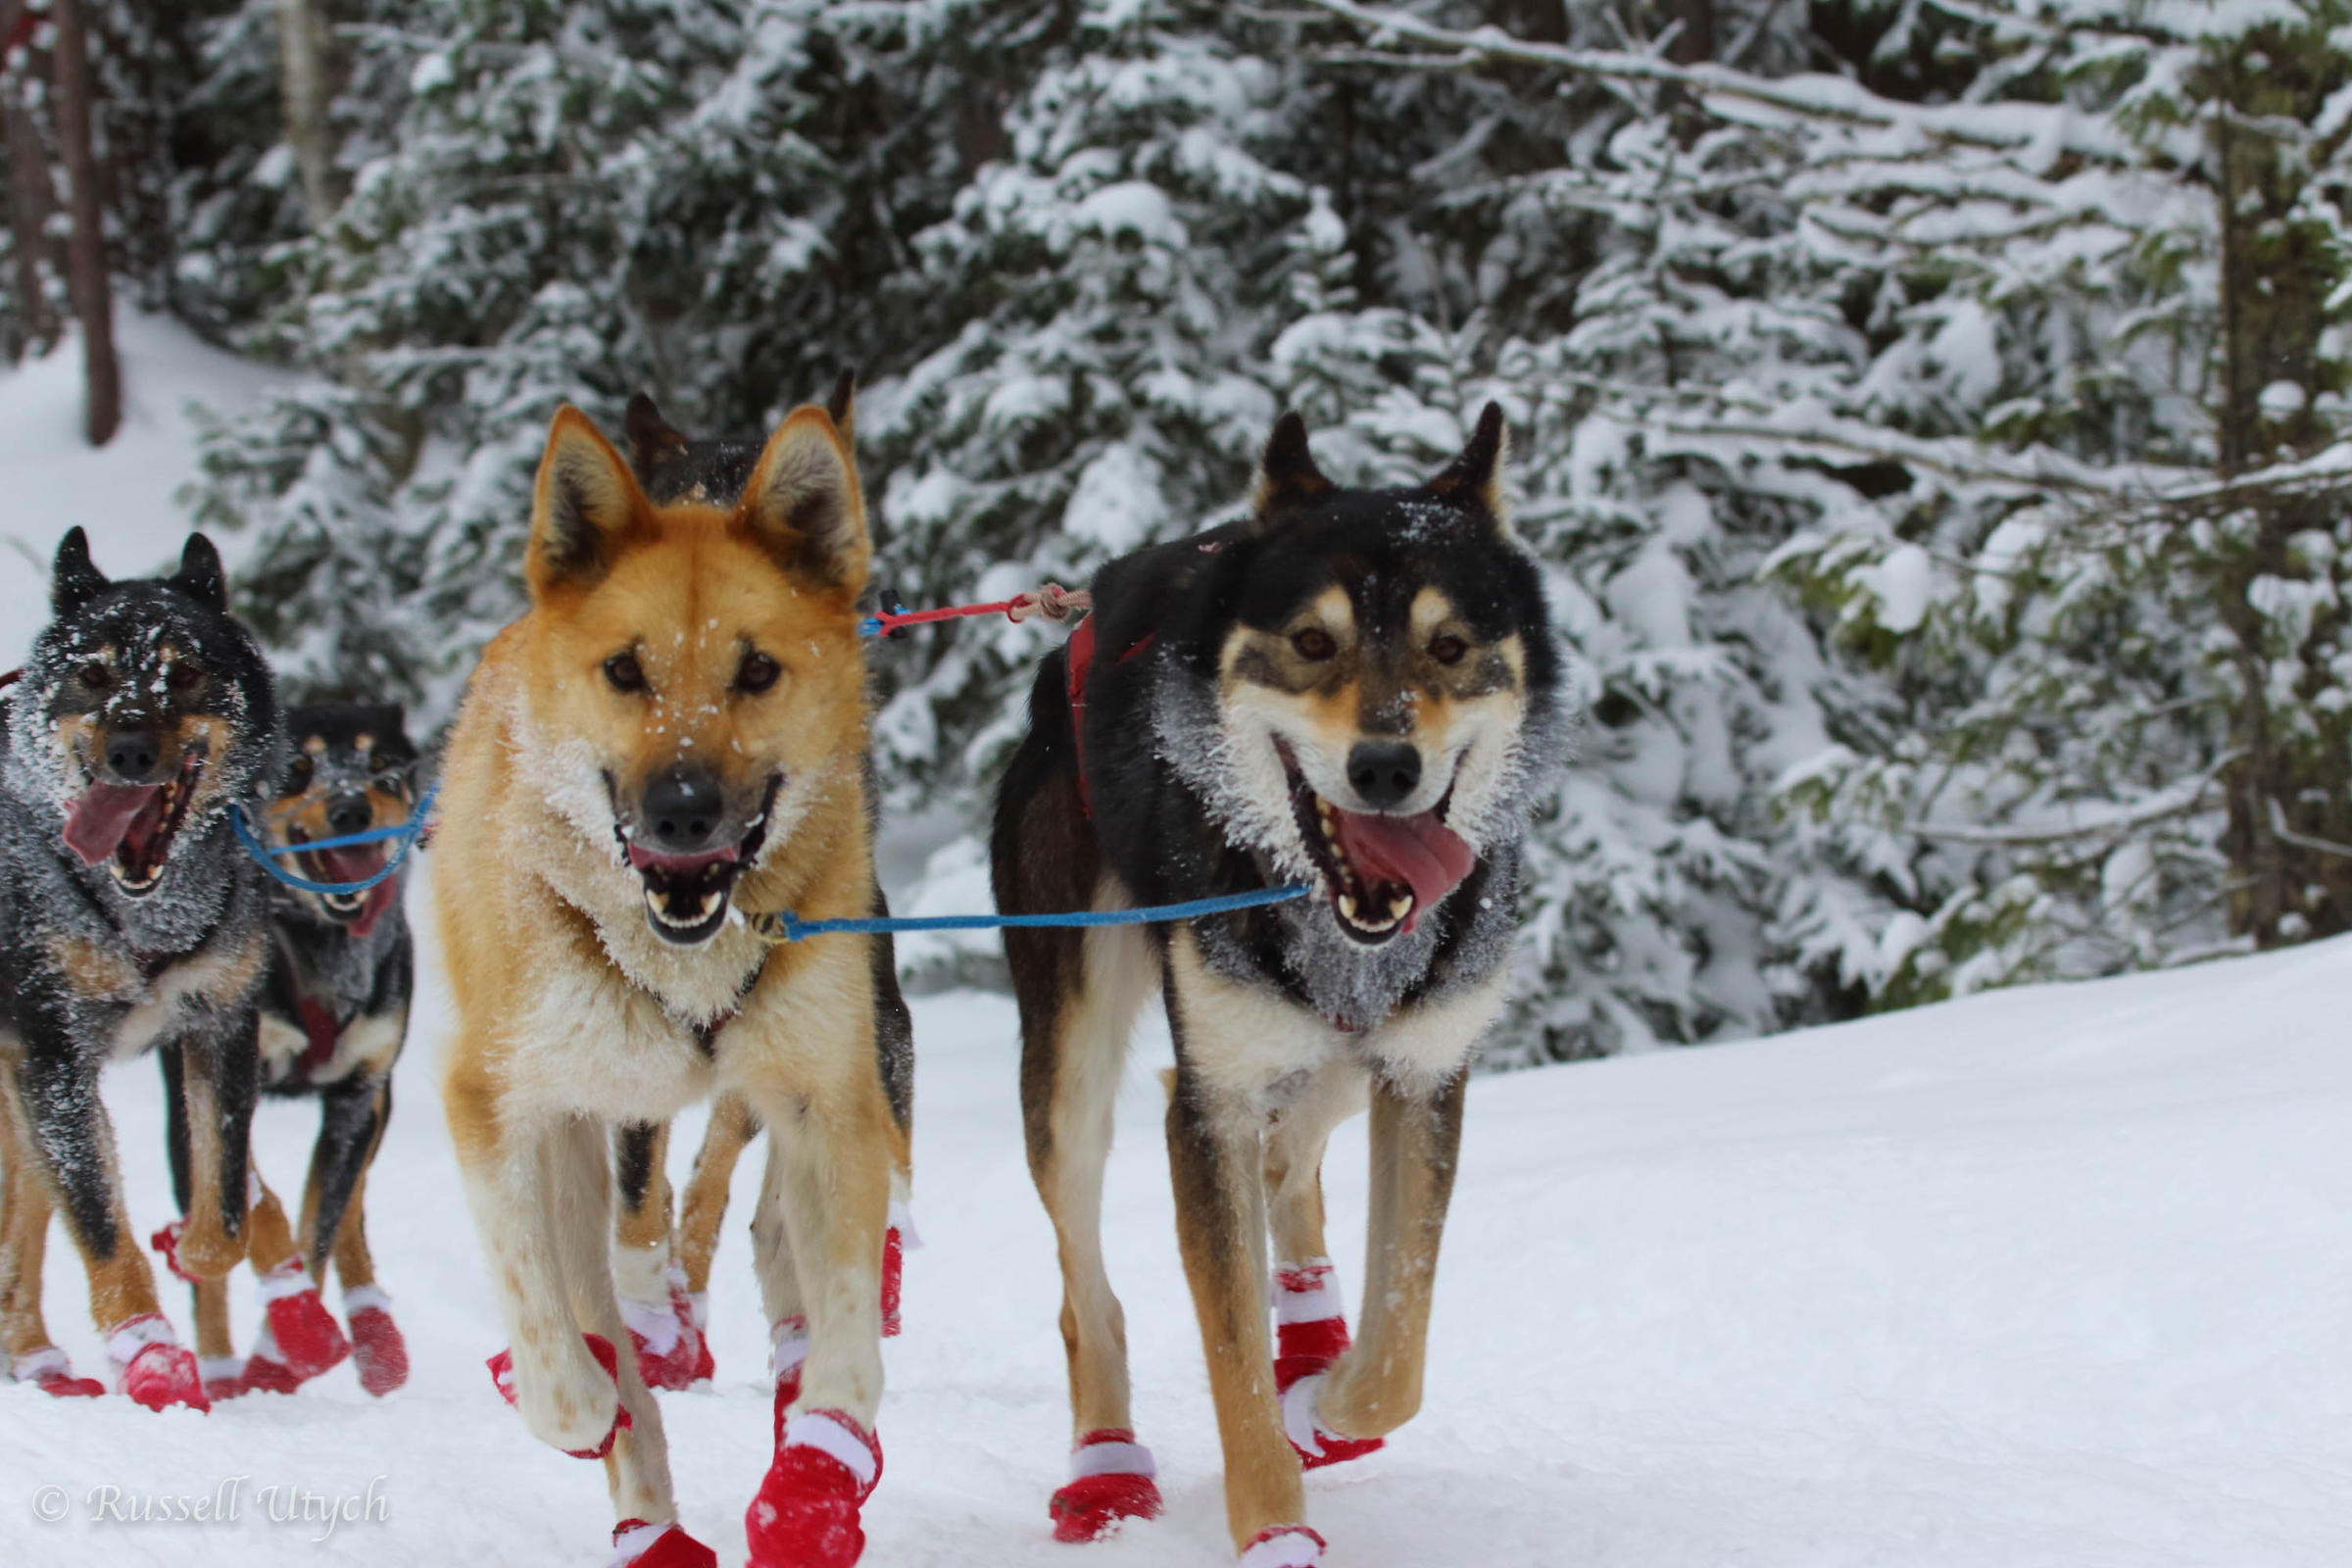 Dog activist unveils the true condition of sled-dogs during off-season